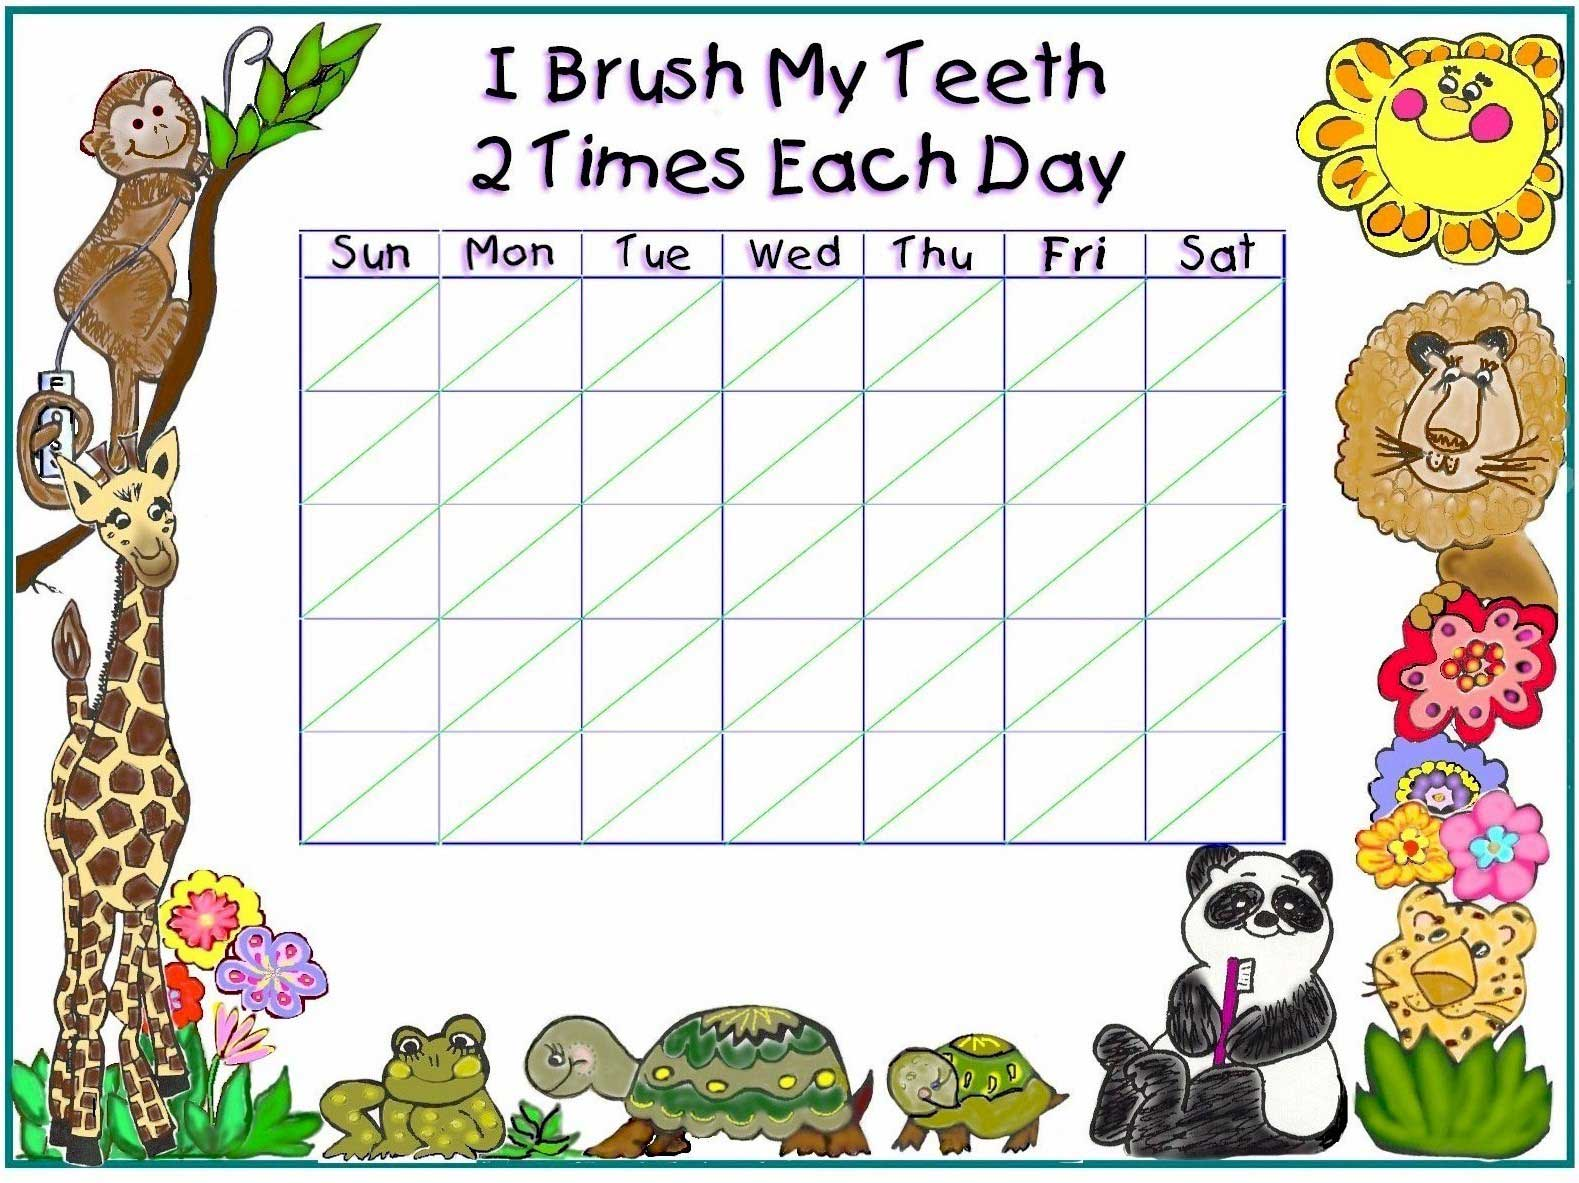 photograph relating to Printable Tooth Brushing Charts named Free of charge Teeth Brushing Chart , Totally free Printable Teeth Brushing